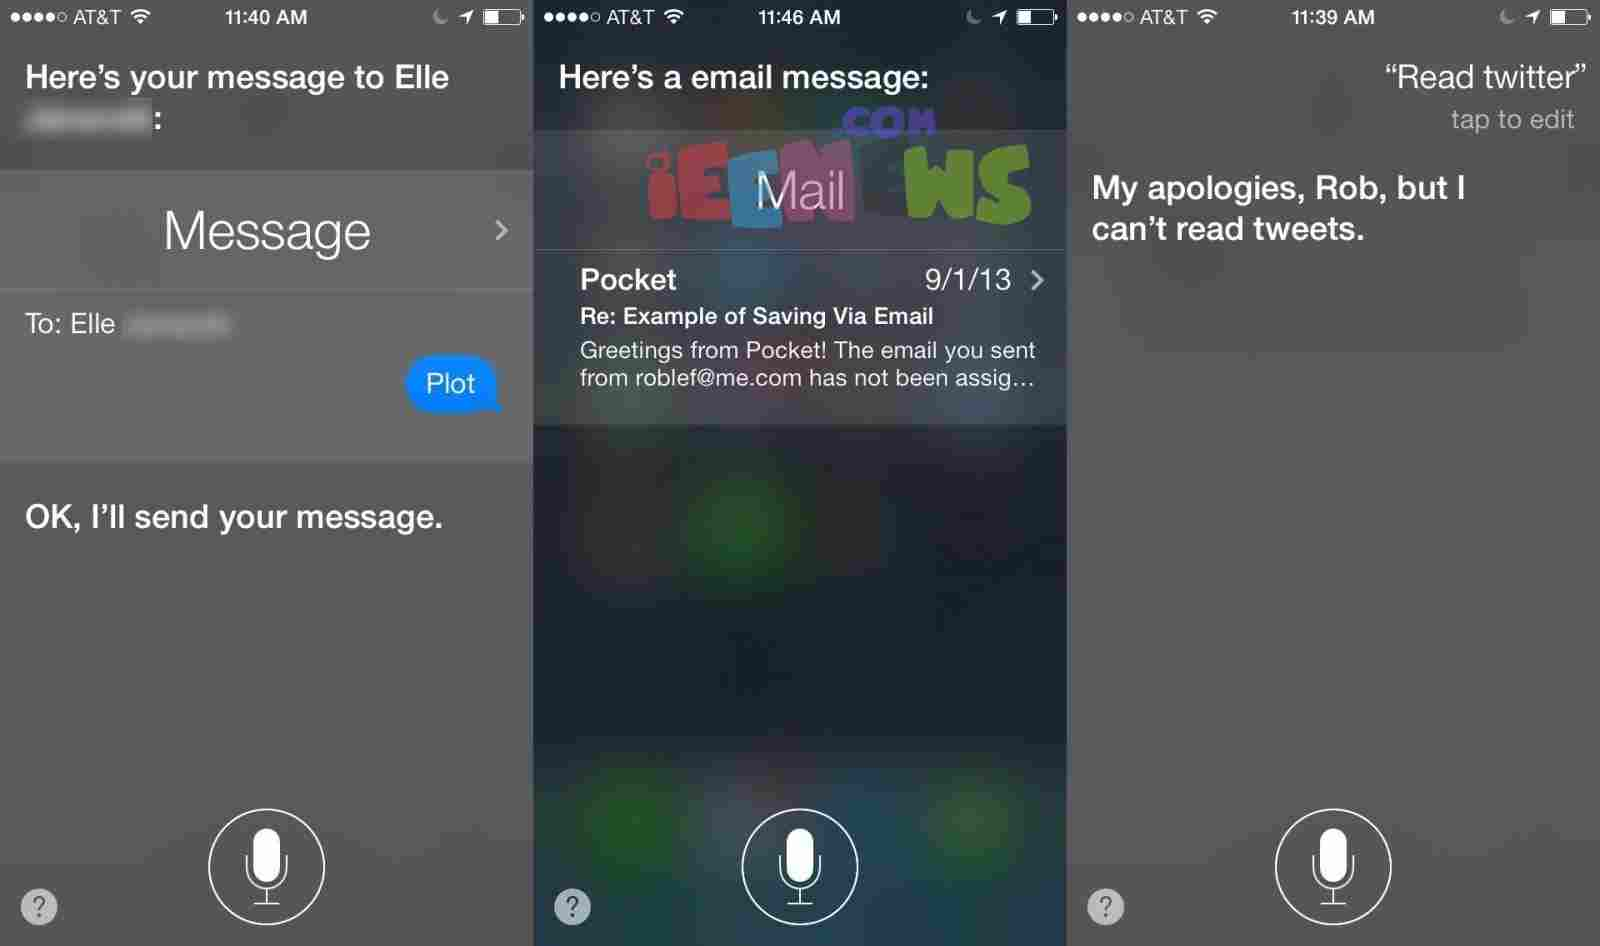 How to check and read email messages Using siri in iOS 7 and iOS 8